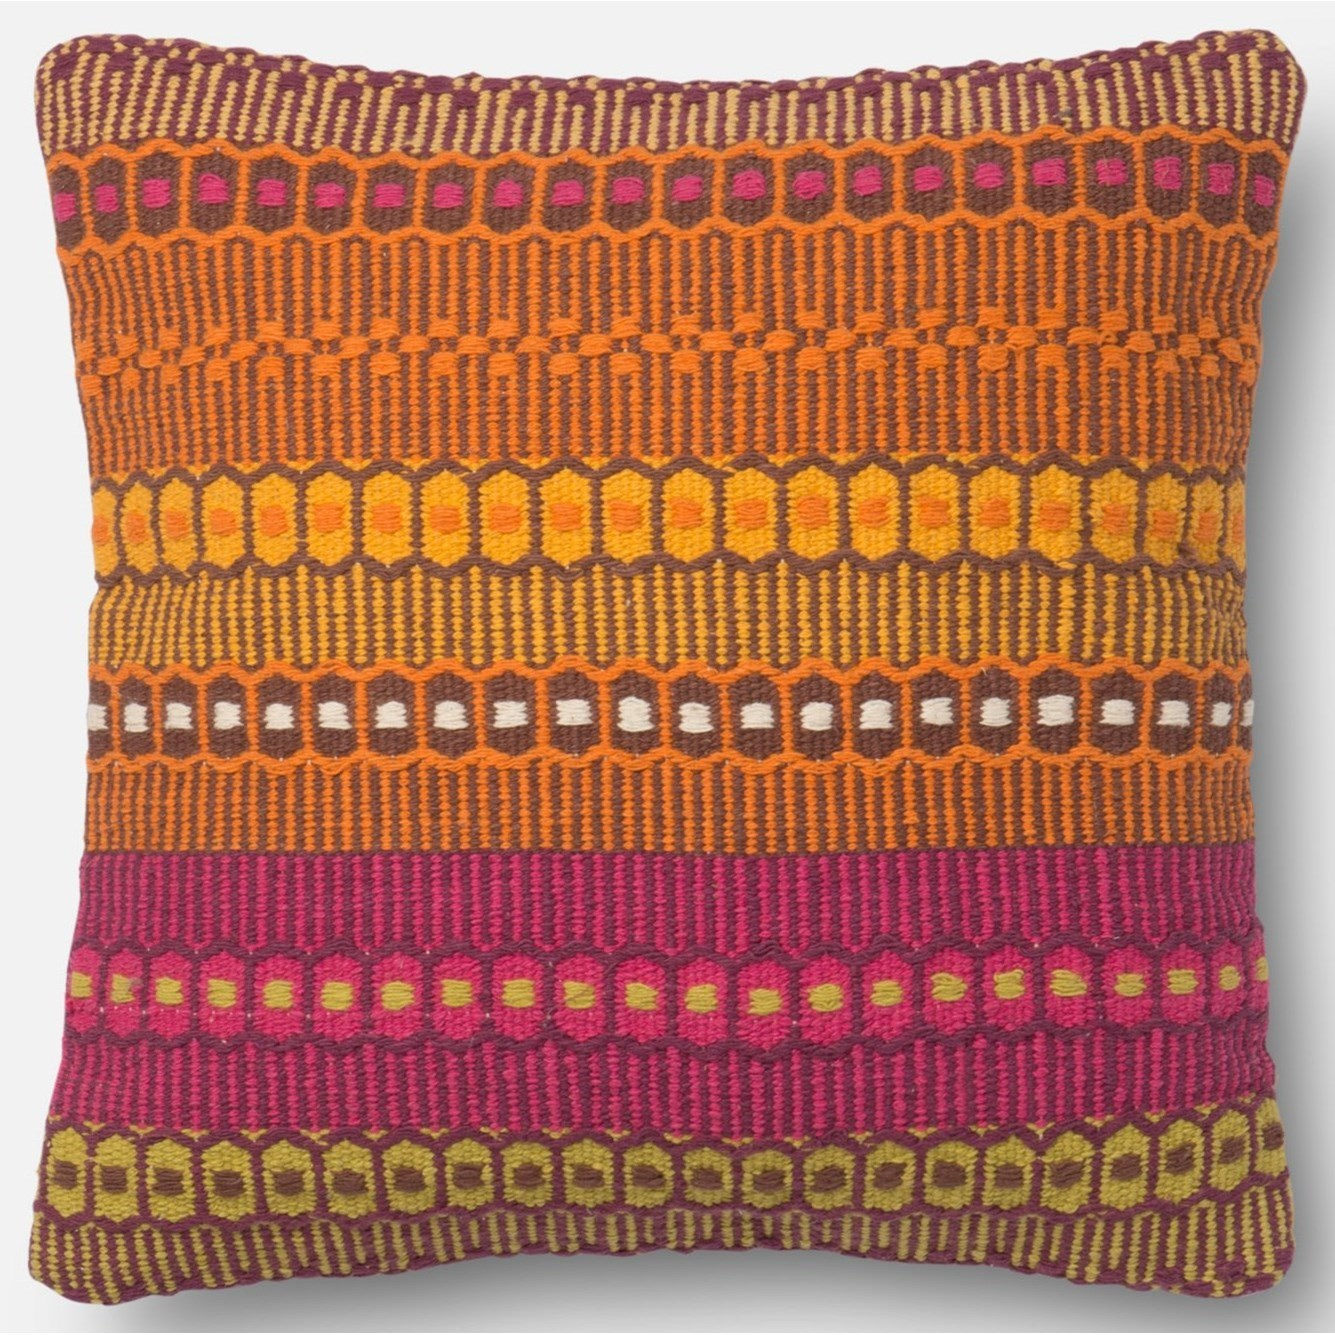 "Accent Pillows 18"" X 18"" Down Pillow by Loloi Rugs at Sprintz Furniture"